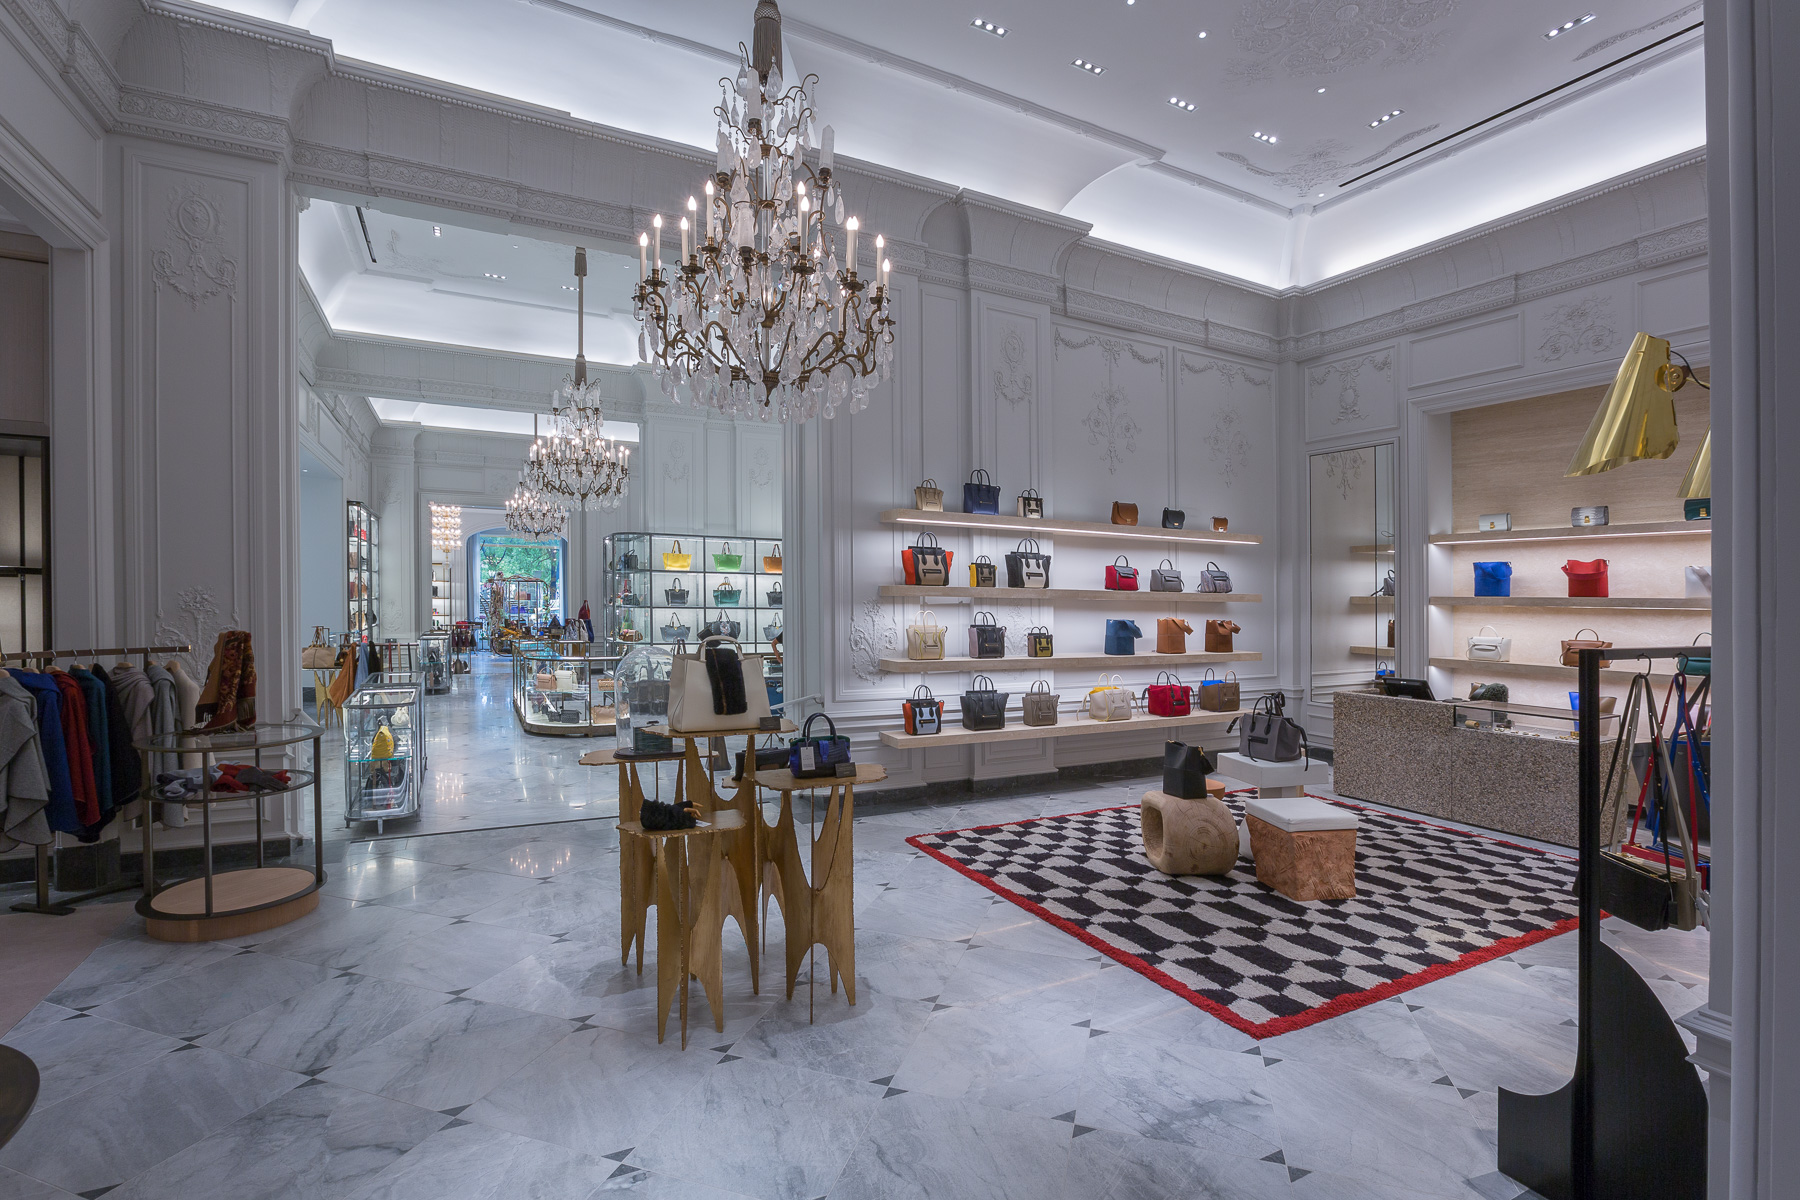 Jul 30,  · Bergdorf Goodman, New York City: Hours, Address, Bergdorf Goodman Reviews: 4/5 Things to Do in New York City ; Bergdorf Goodman; Bergdorf Goodman. Is this your business? Reviews #49 of Shopping in New My wife has been shopping in Bergdorf